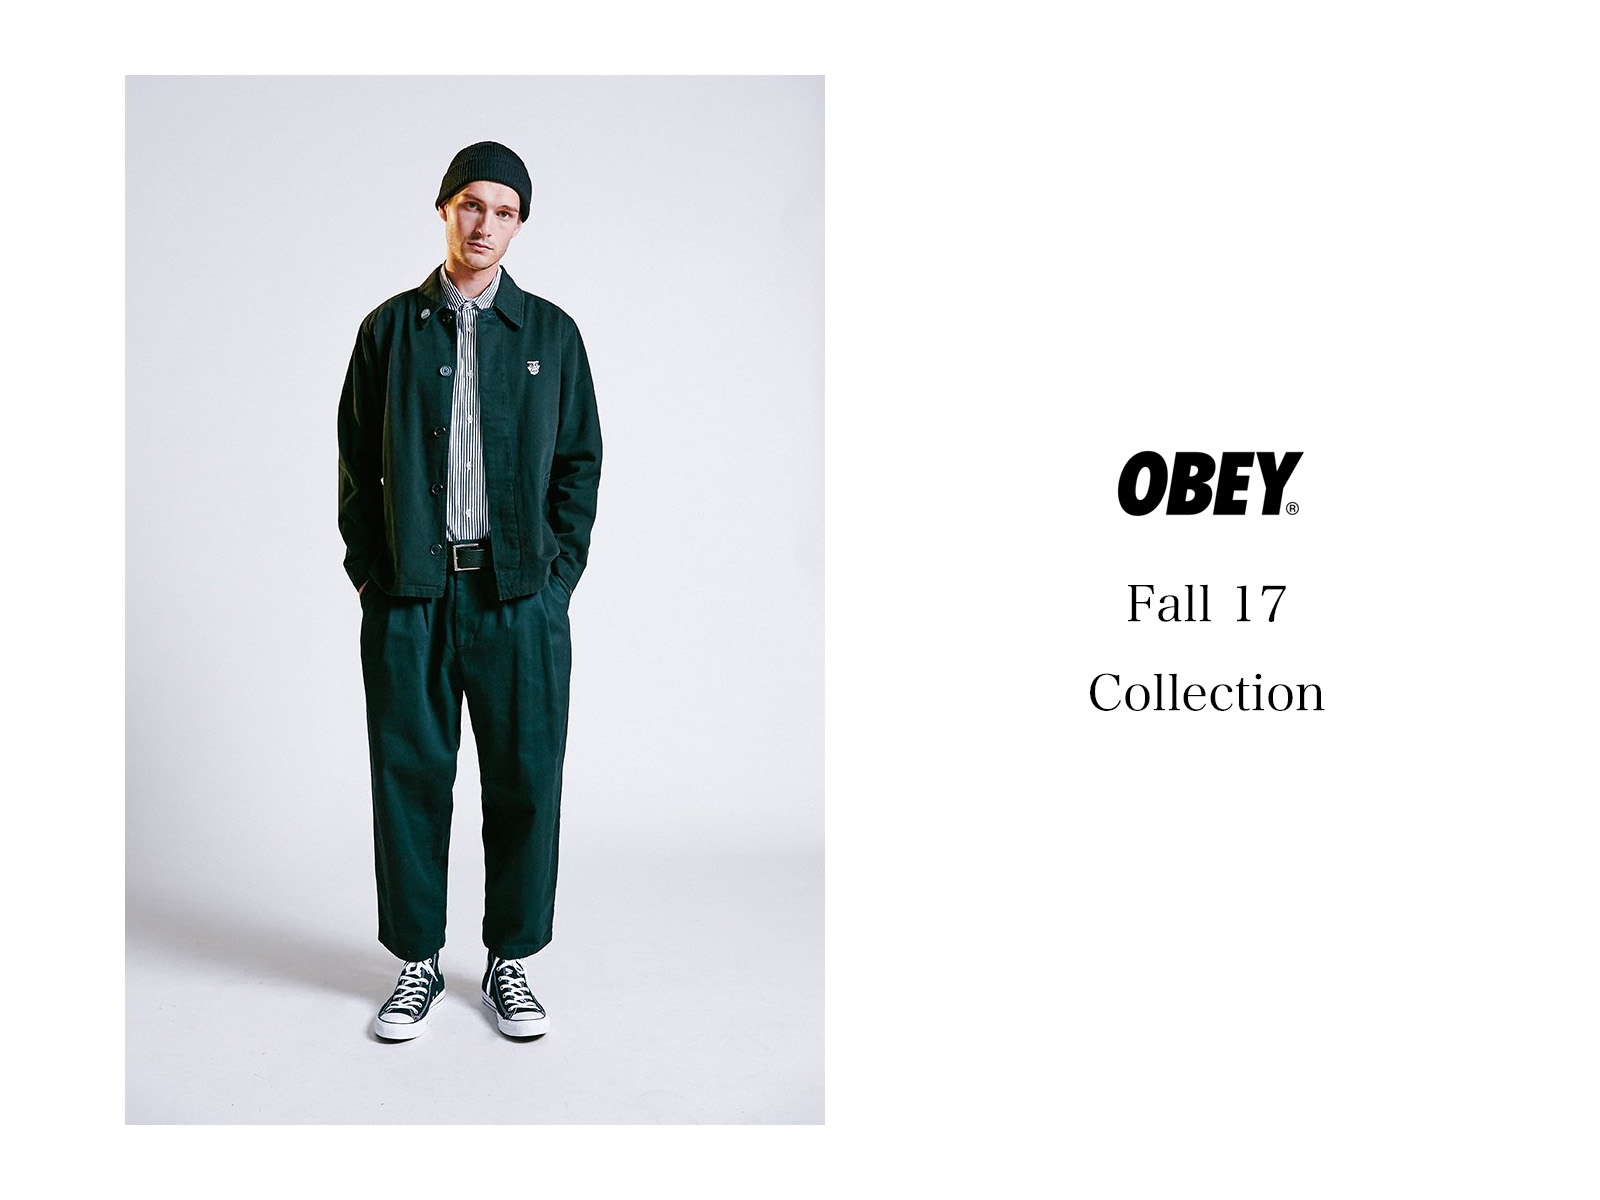 OBEY Fall 17 Collection